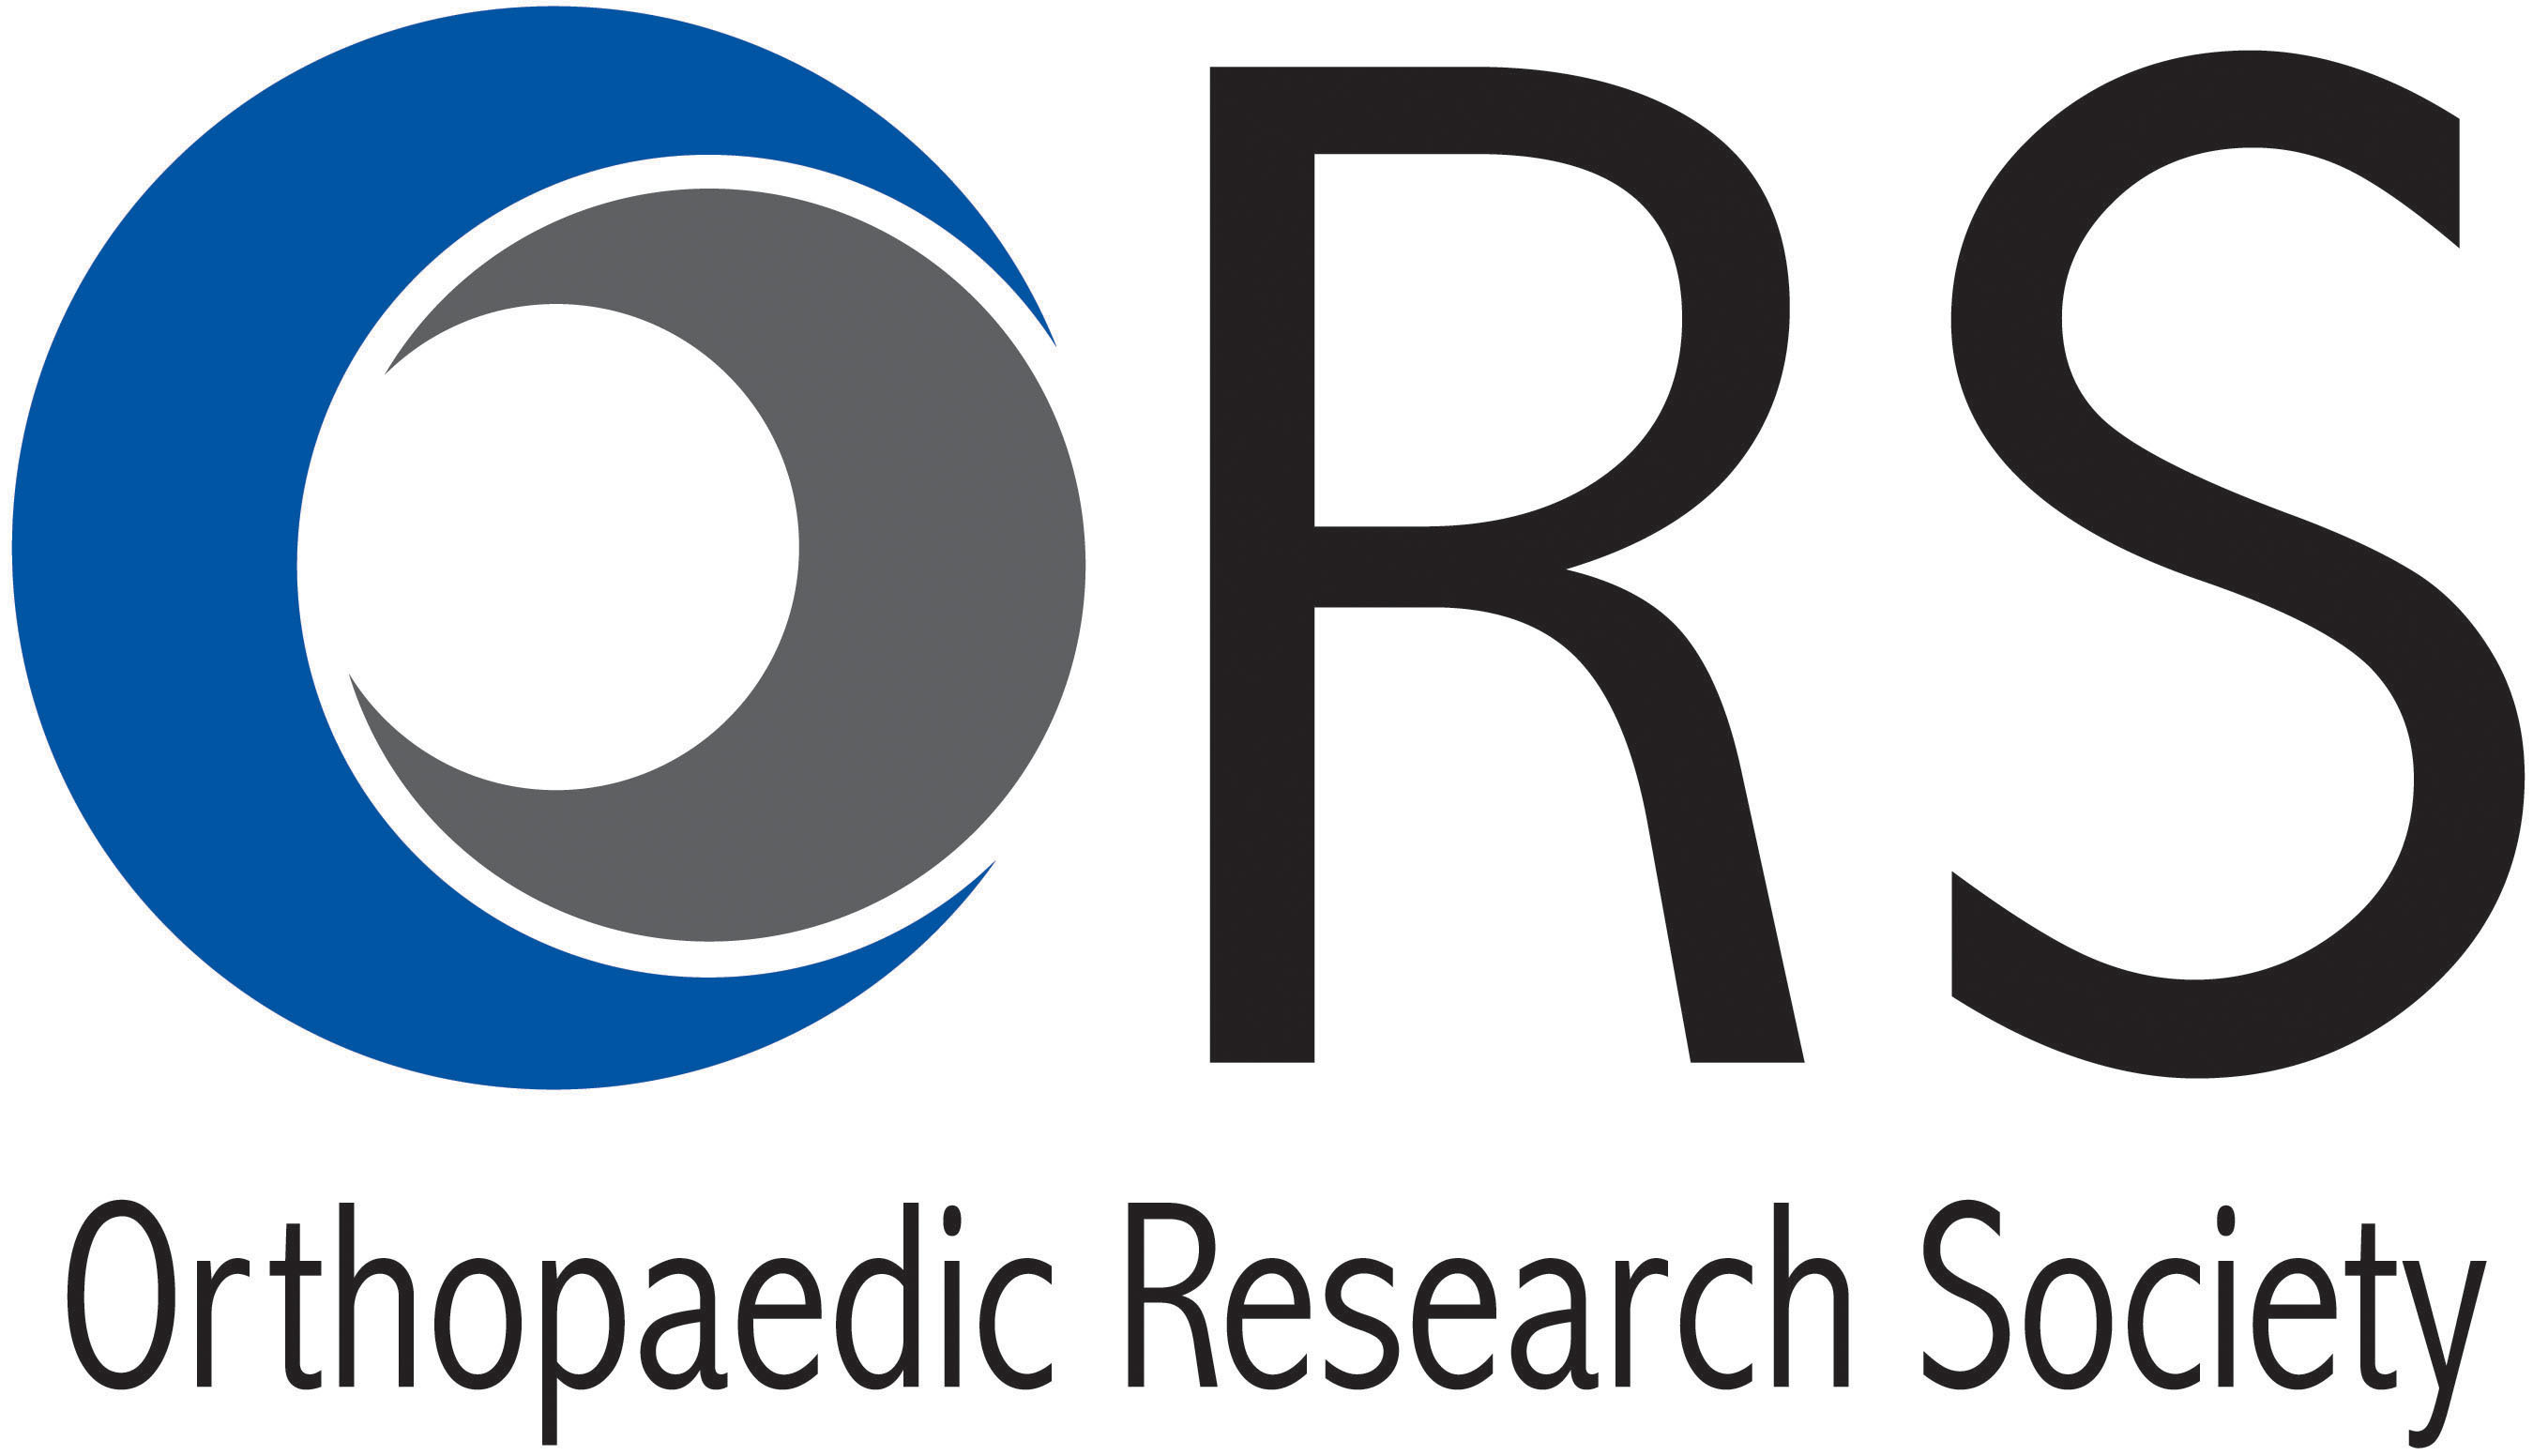 Orthopaedic Research Society logo.